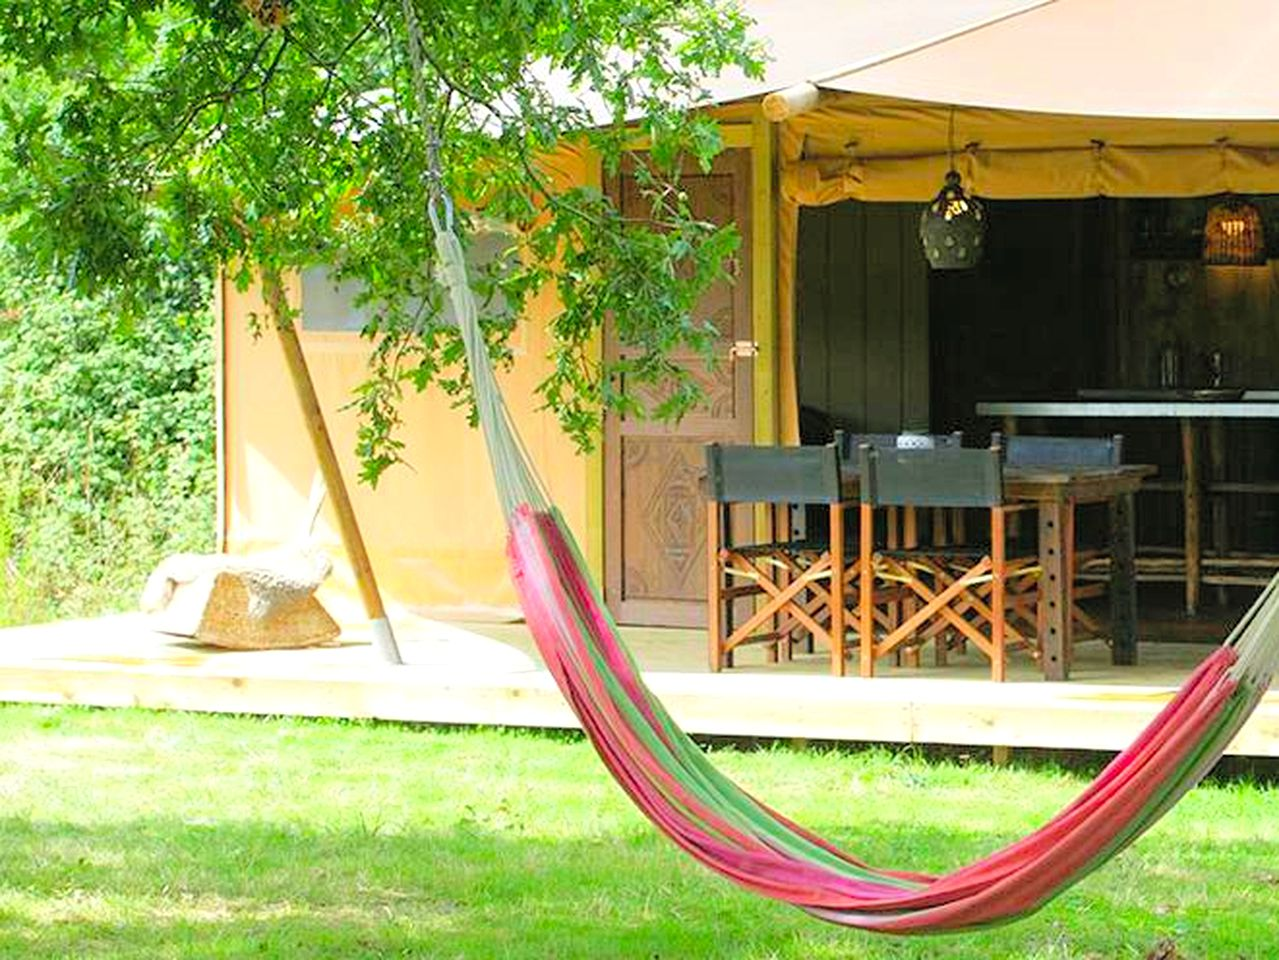 Safari Tents (Moutiers-sur-le-Lay, Pays de la Loire, France)